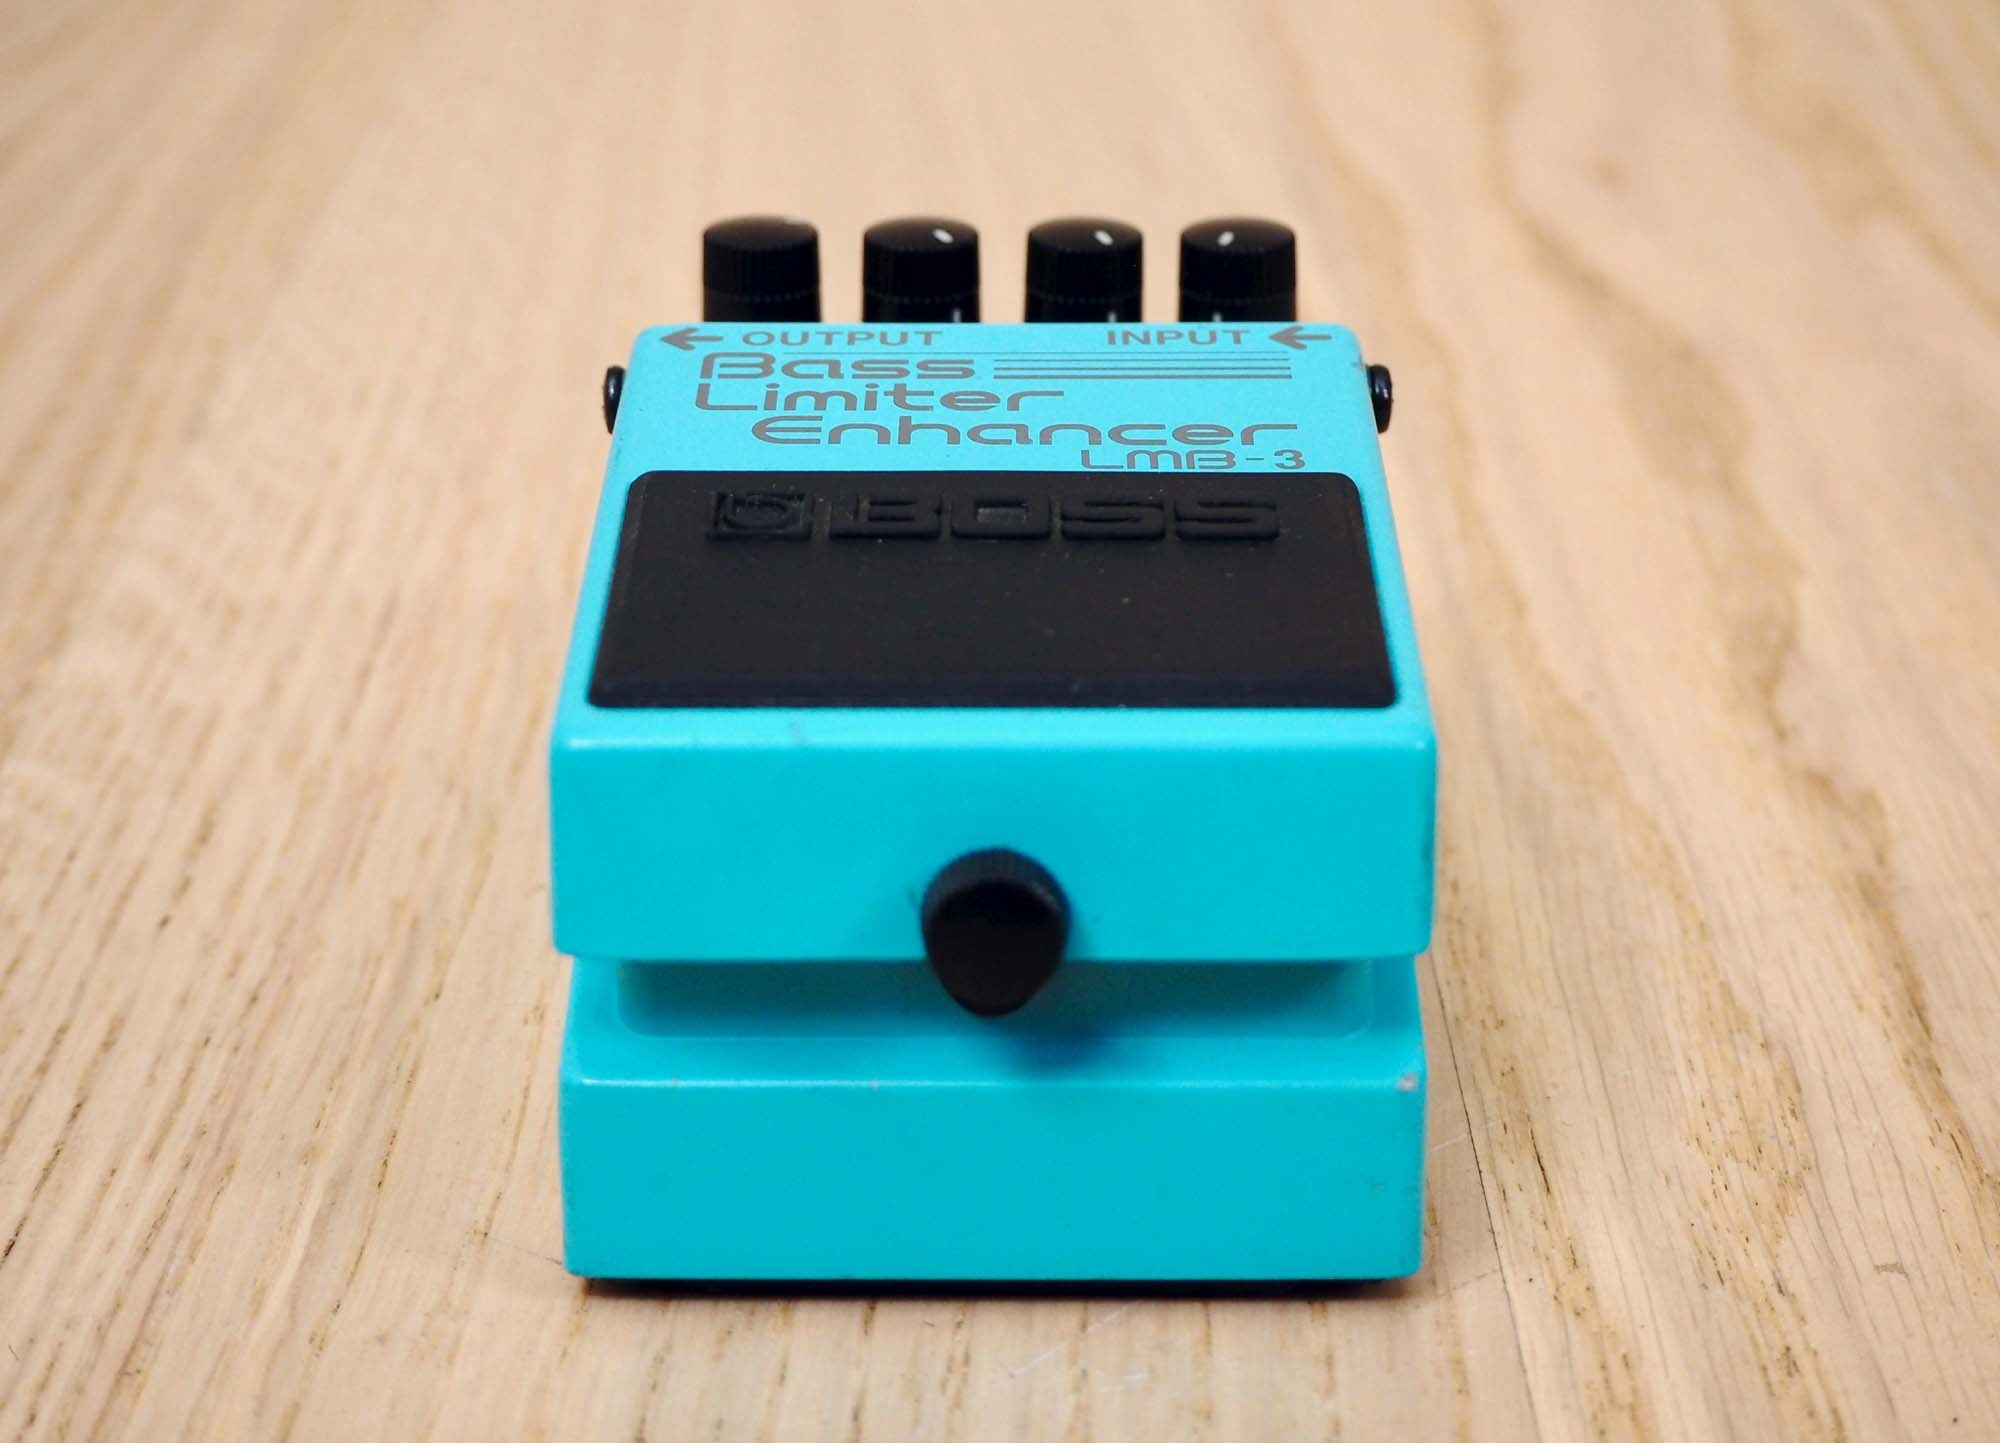 1995 Boss LMB-3 Bass Limiter Enhancer Effects Pedal Taiwan